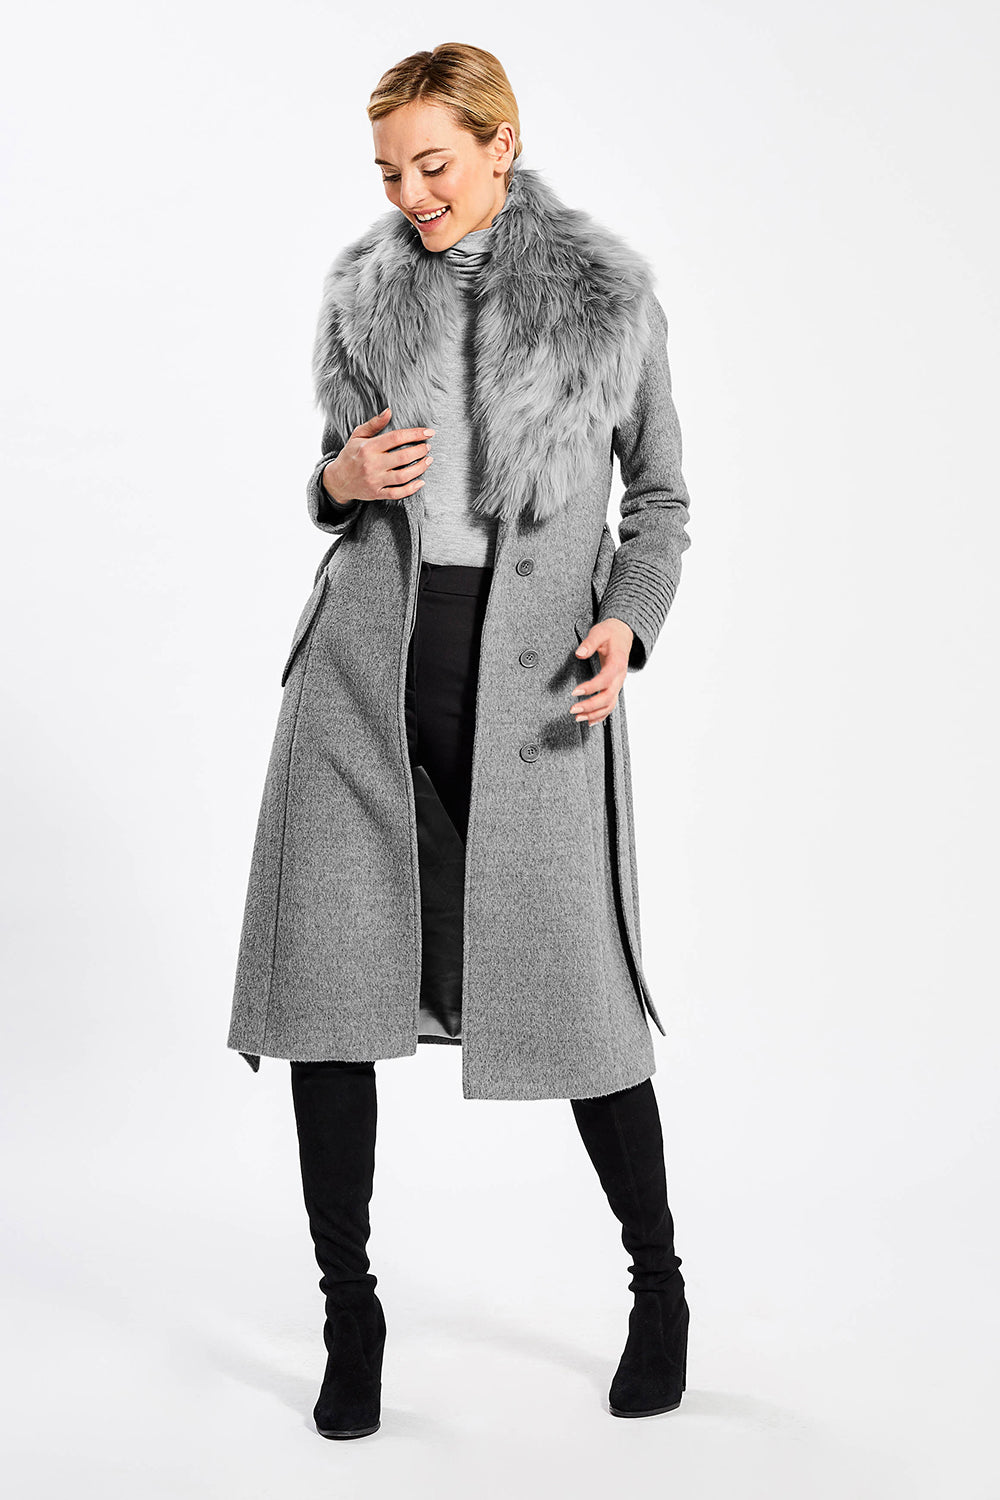 Sentaler Long Coat with Fur Collar featured in Baby Alpaca and available in Shale Grey. Seen open.